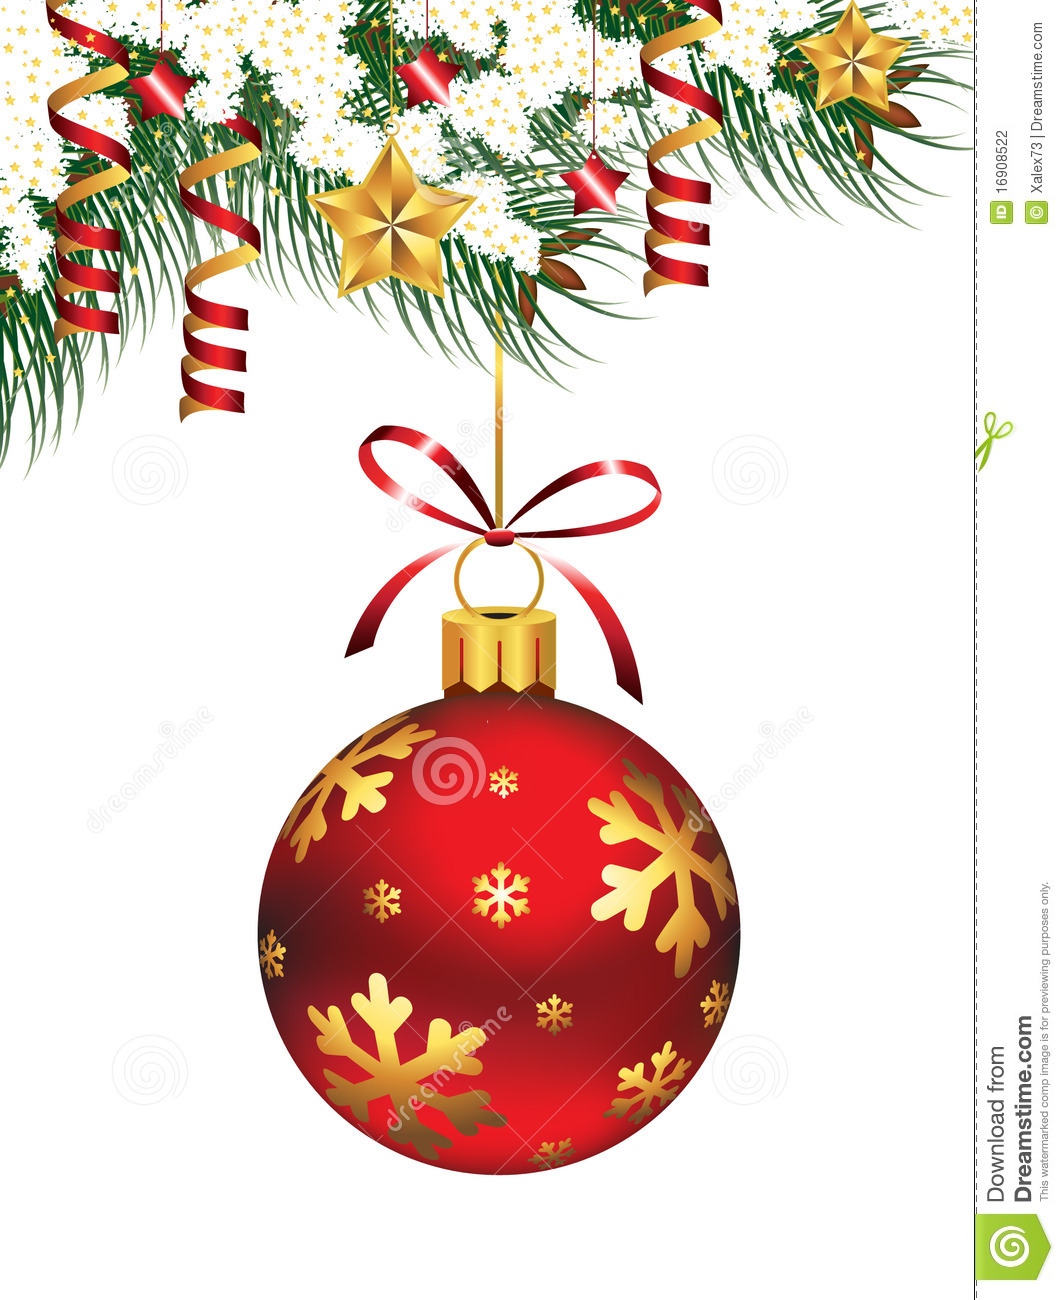 Hanging christmas ornament stock photography image 16908522 - Hanging christmas ornaments ...